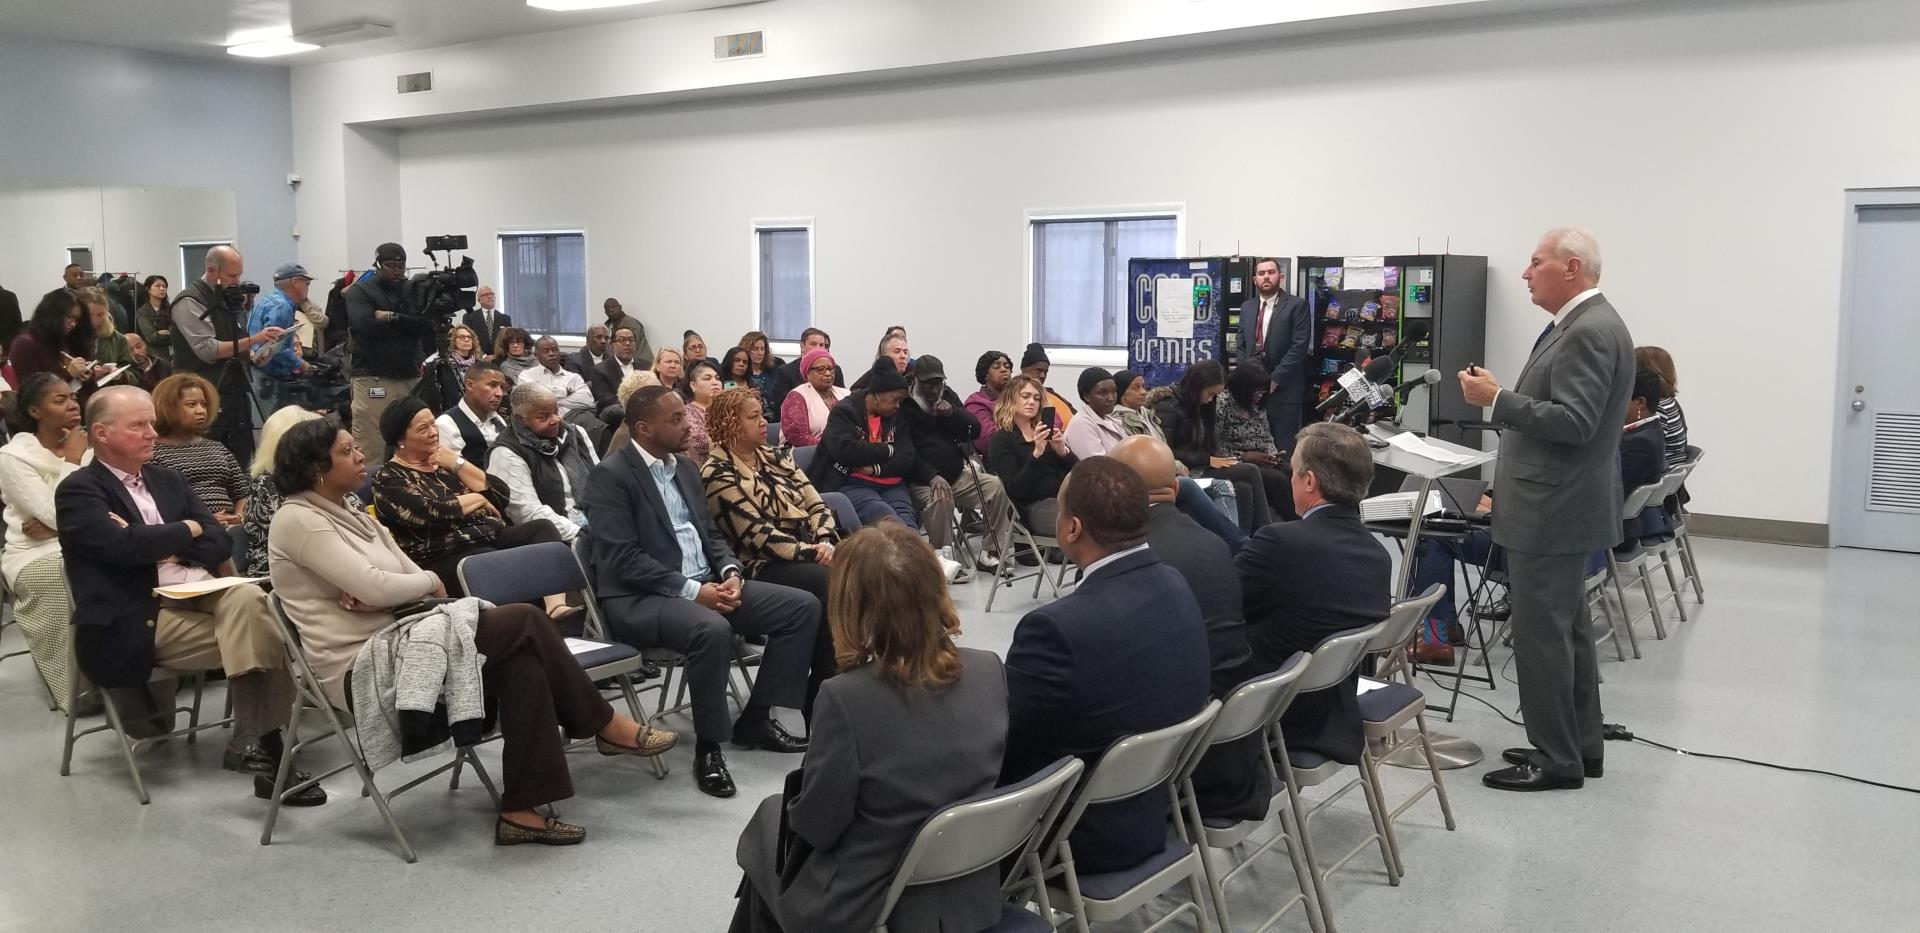 Mayor Purzycki announces that the Riverside neighborhood in Wilmington's Northeast section has been named as the 19th Purpose Built Community in the U.S.